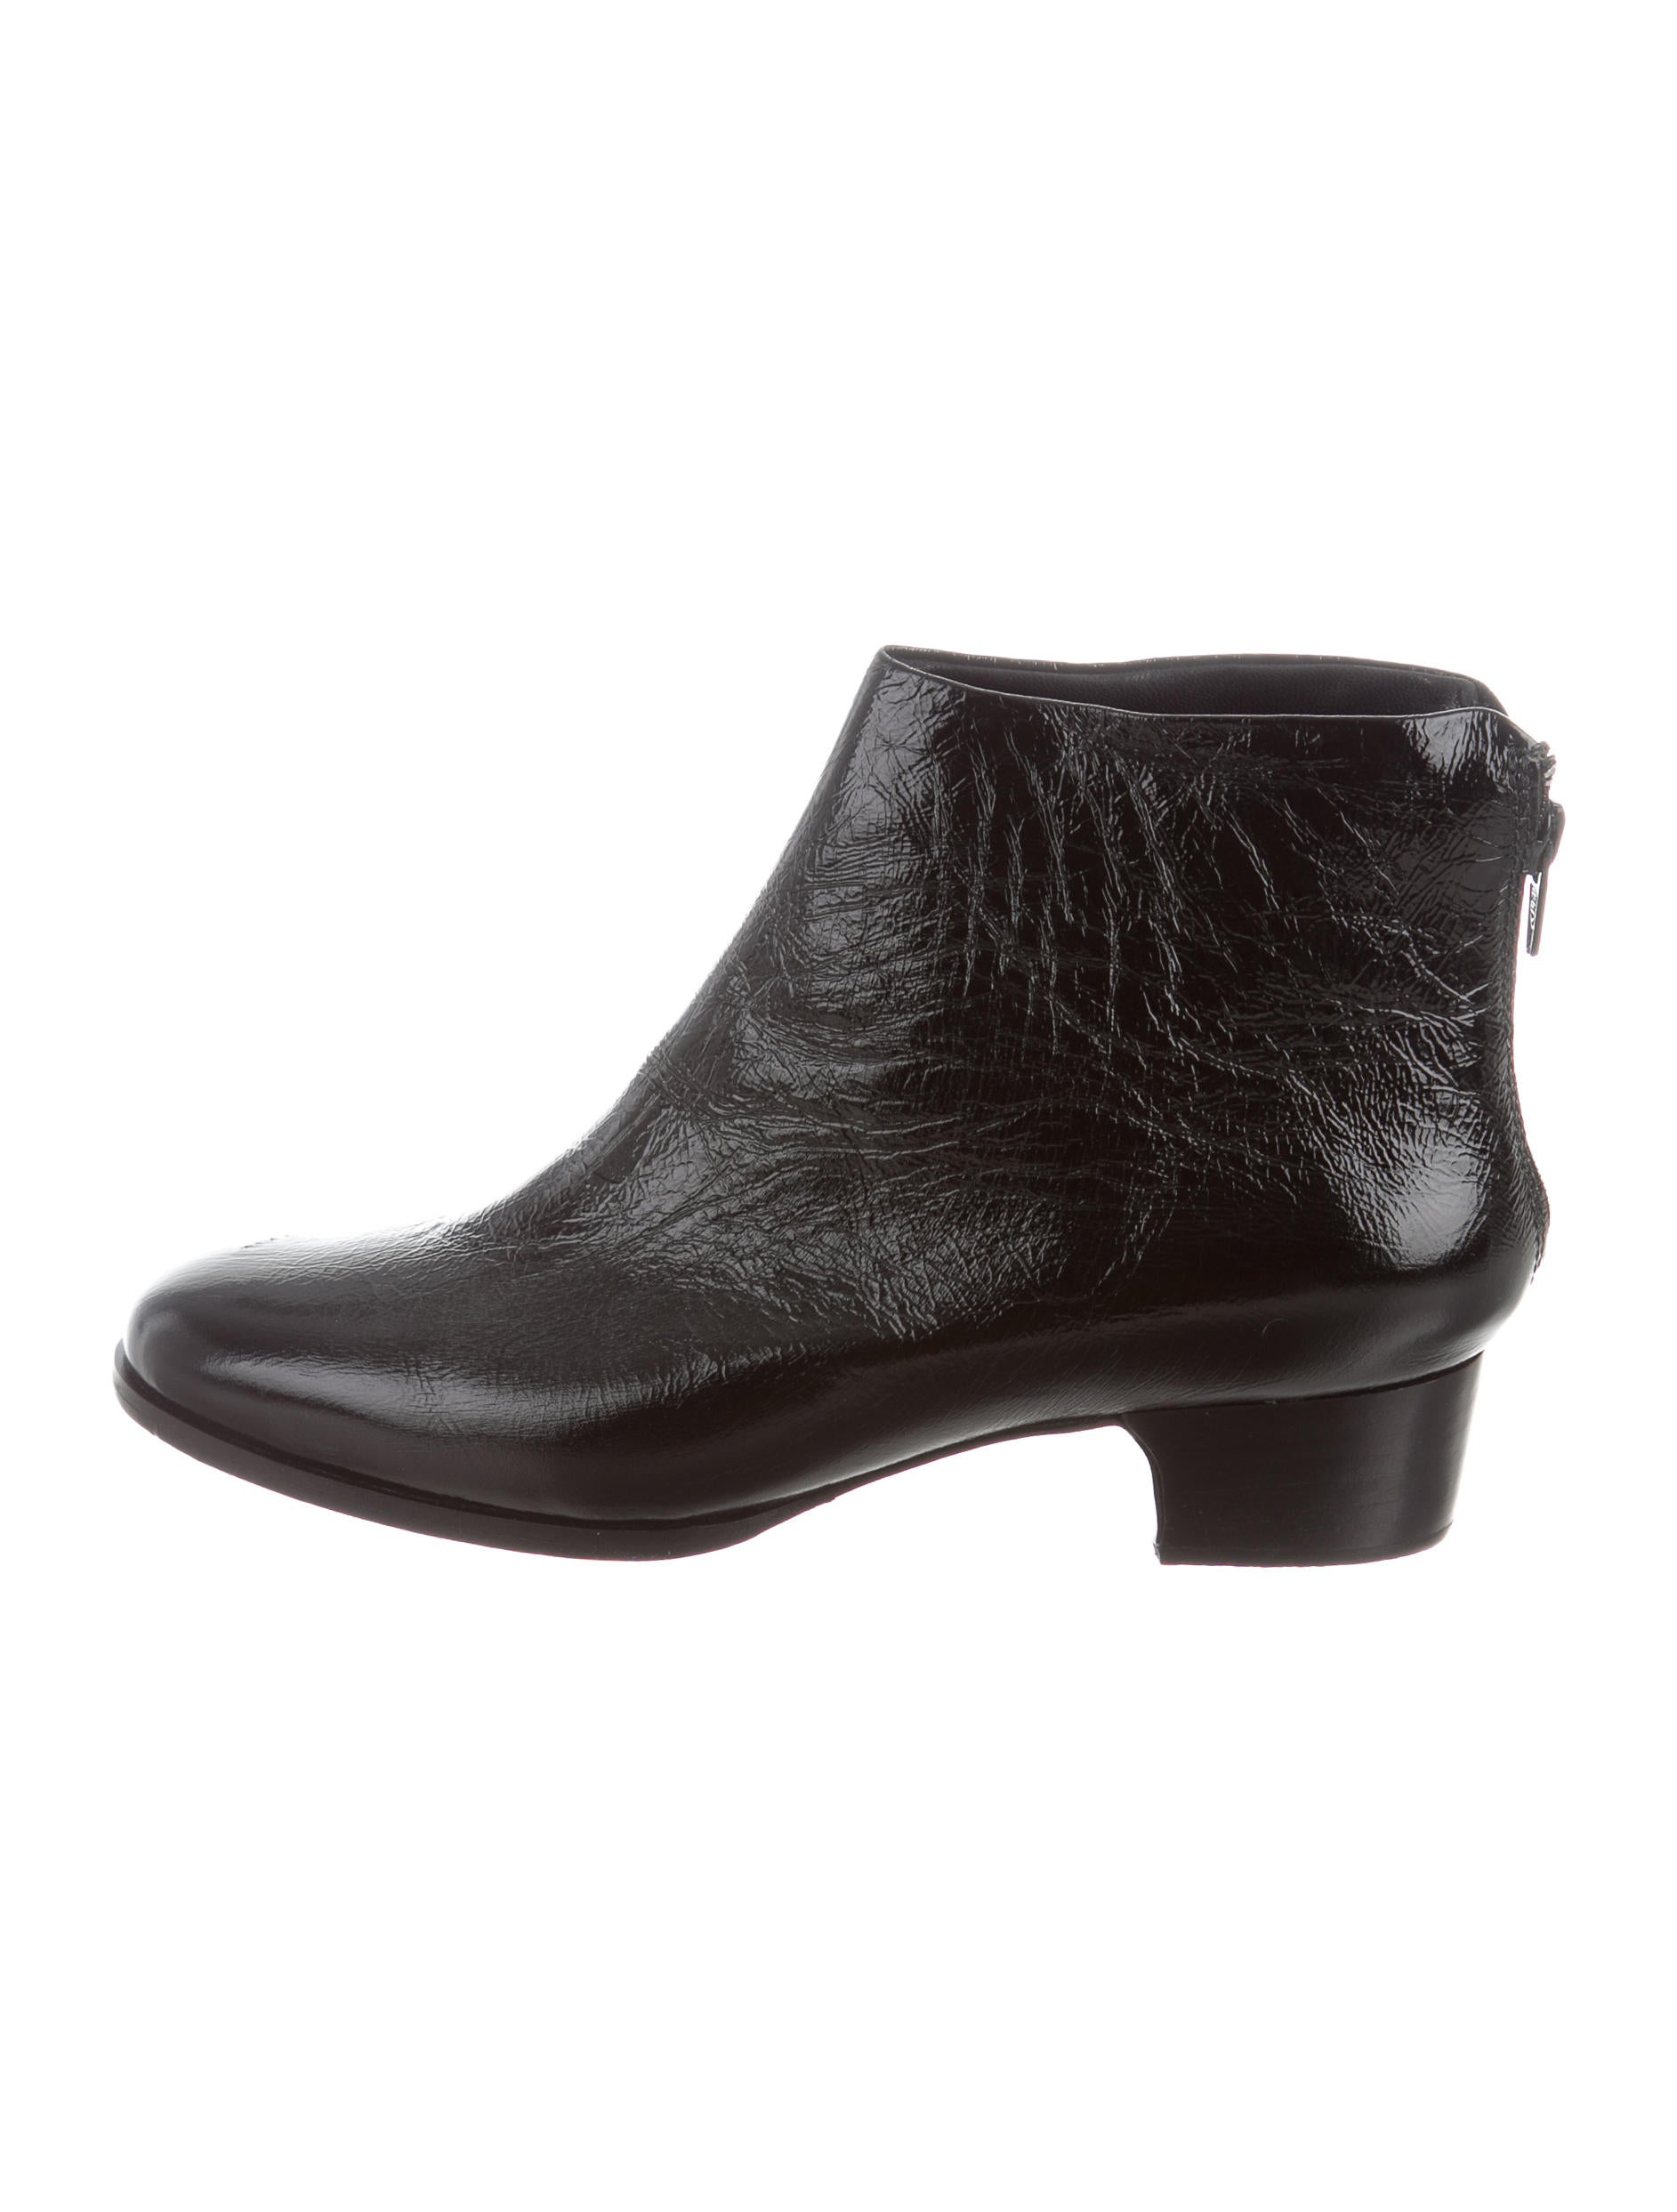 Rachel Comey Patent Leather Ankle Boots w/ Tags